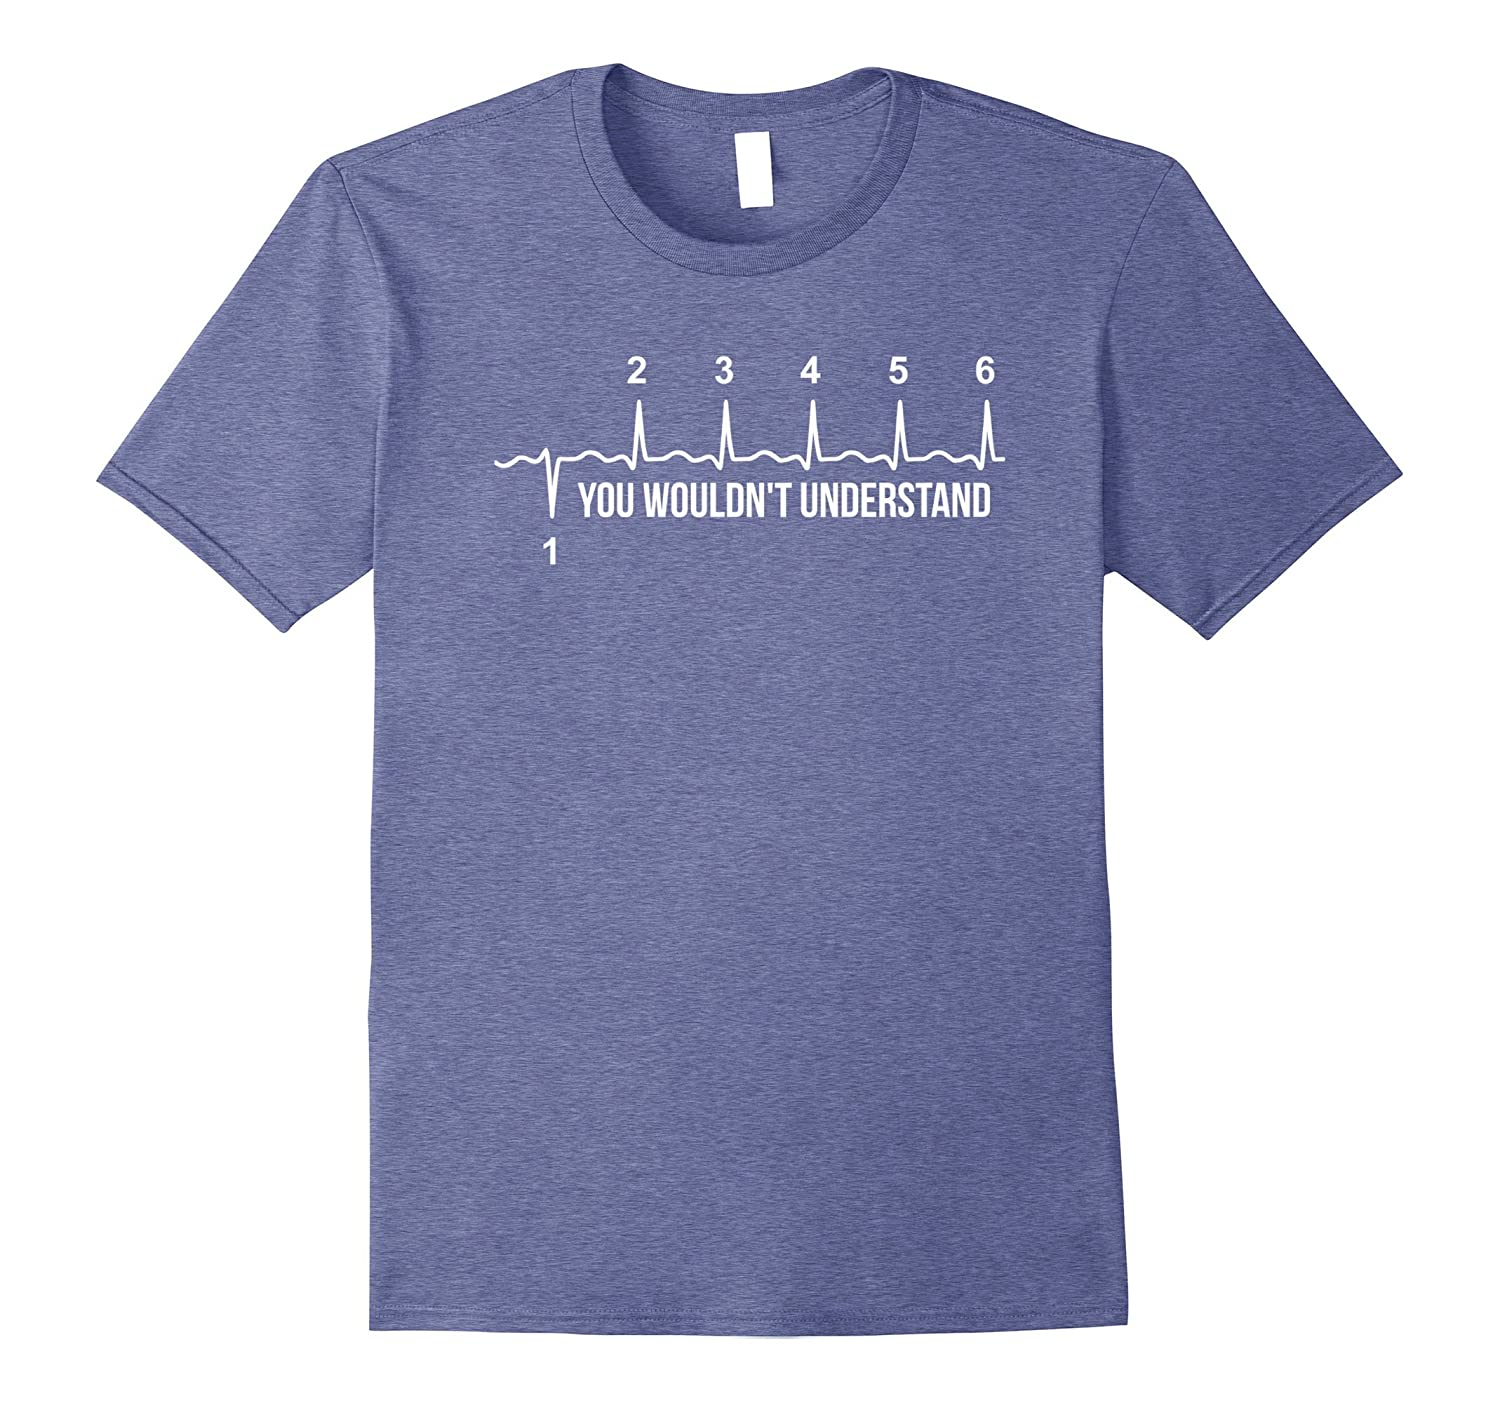 08e16391 You Wouldn't Understand 1 Down T 5 Up Motorcycle T-Shirt-T-Shirt ...